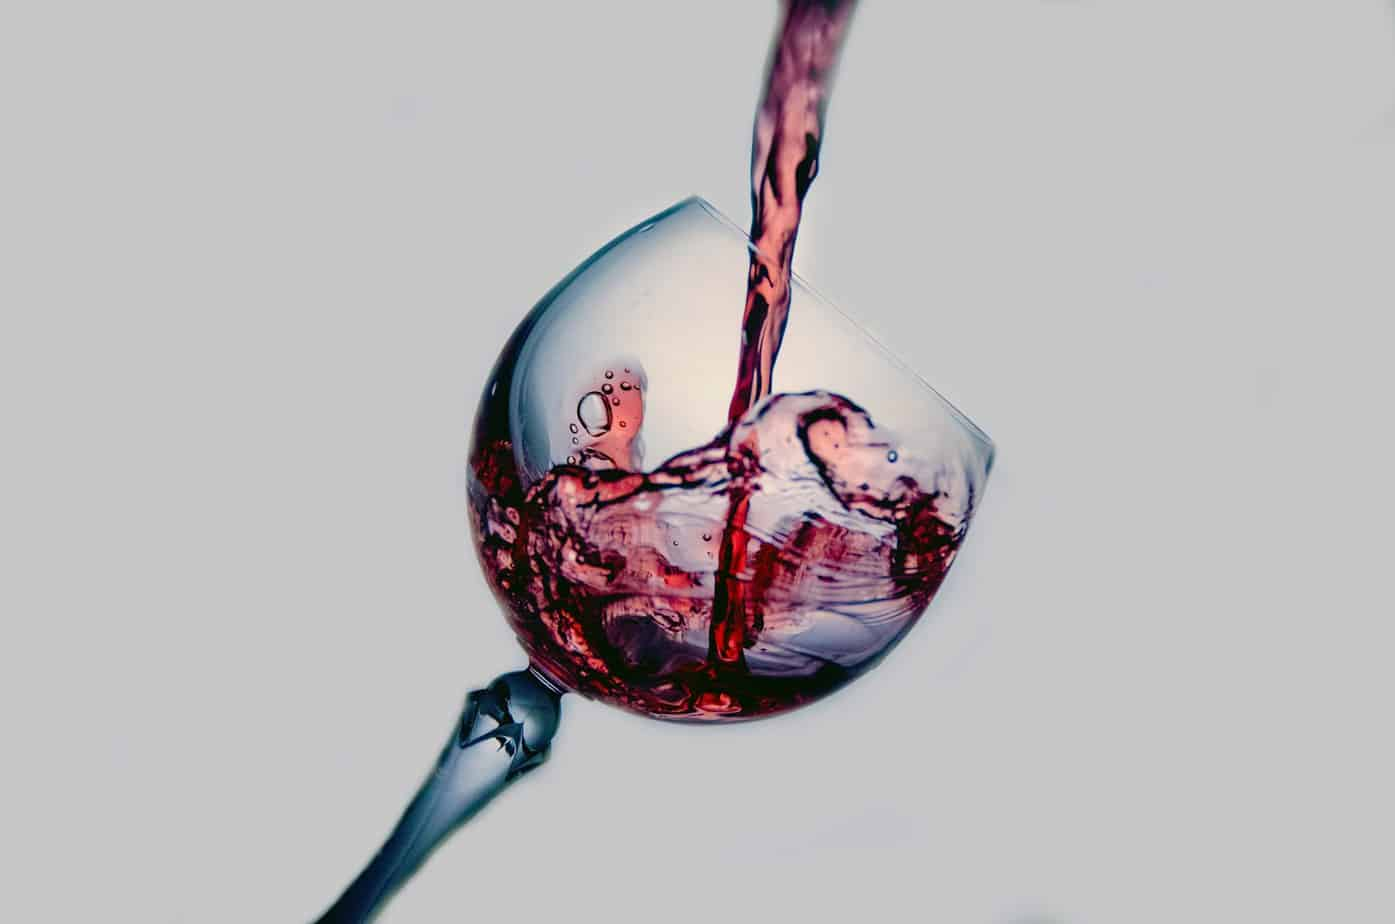 pour wine in a glass